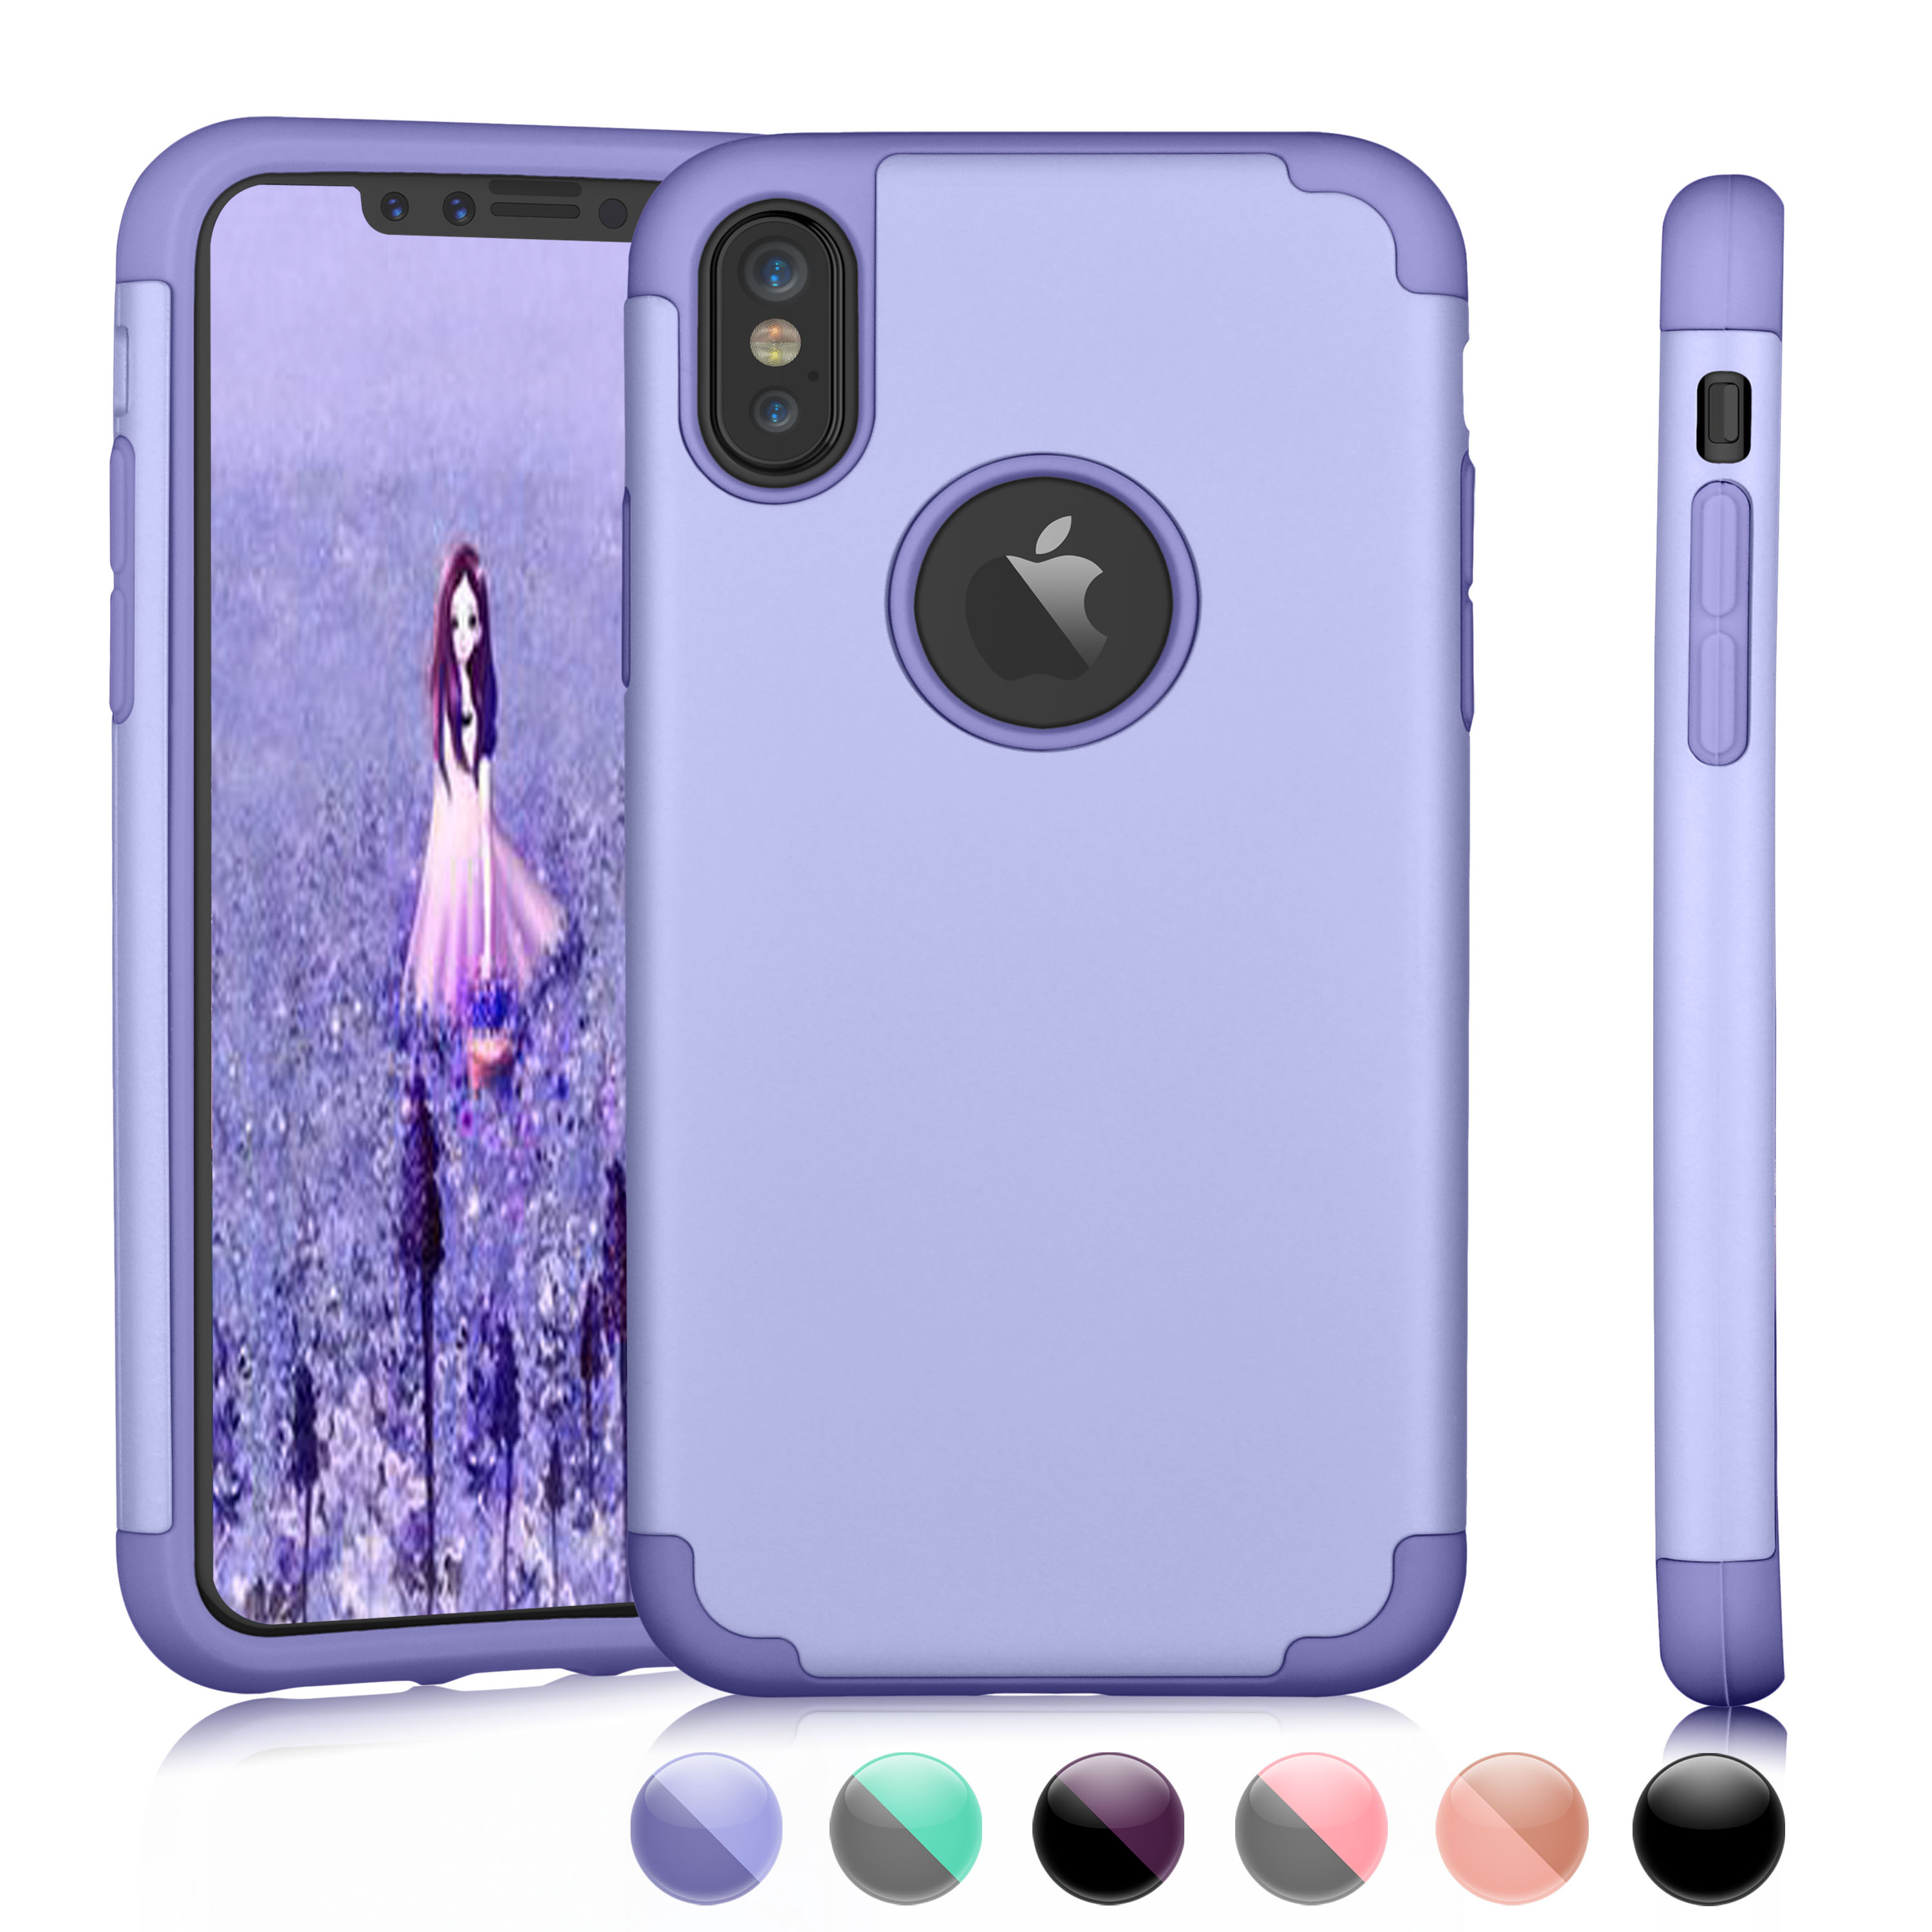 "iPhone X Case,iPhone 10 Case,iPhone X Edition Case, Njjex Matte Finish Flexible Soft Gel TPU Cover Shell Skin [Slim Fit] [Ultra Thin] For Apple 5.8"" iPhone X /iPhone 10 (2017 Release)-Purple"